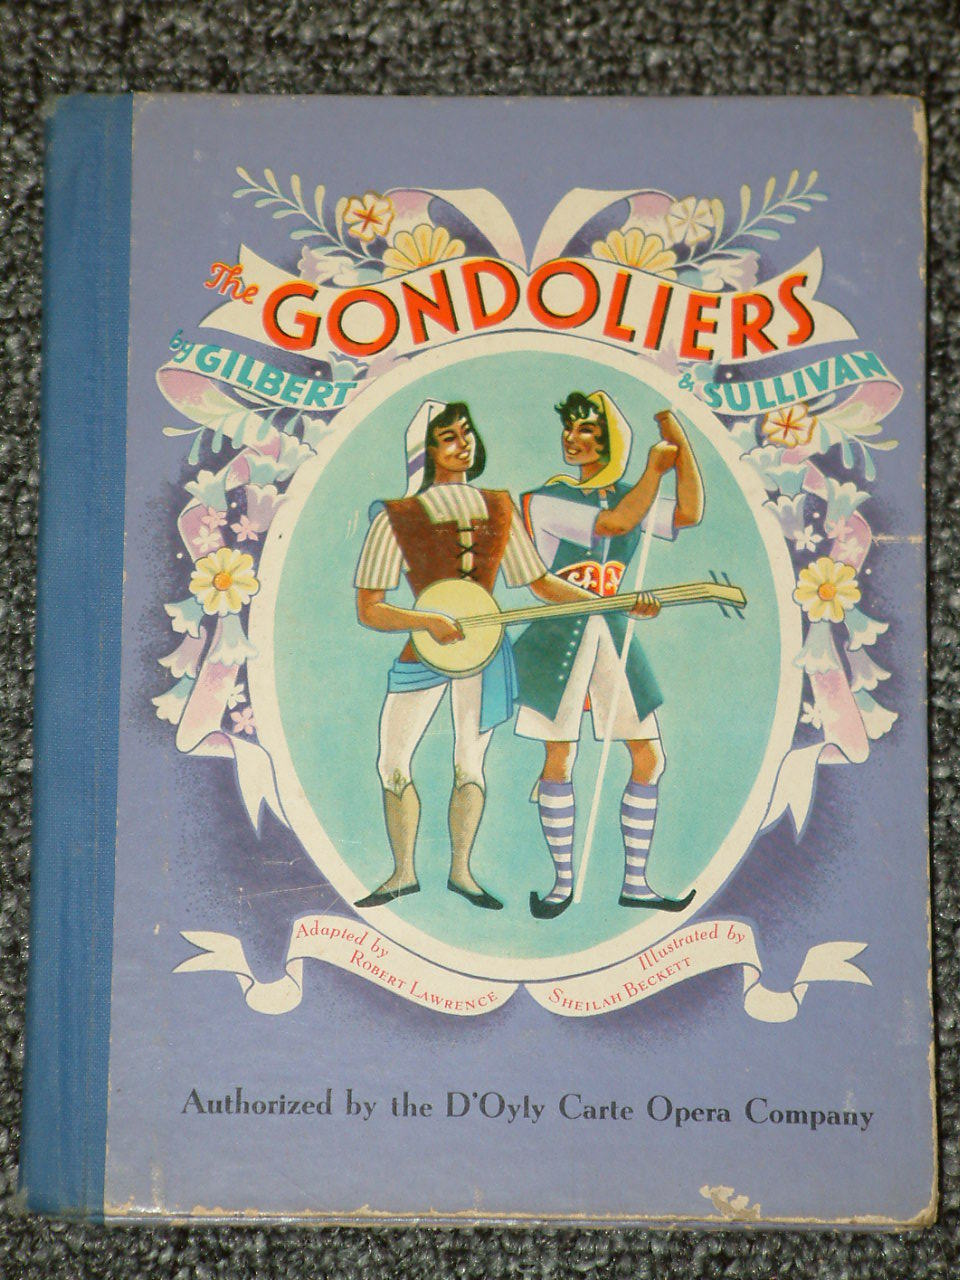 Primary image for The Gondoliers by Gilbert and Sullivan 1940